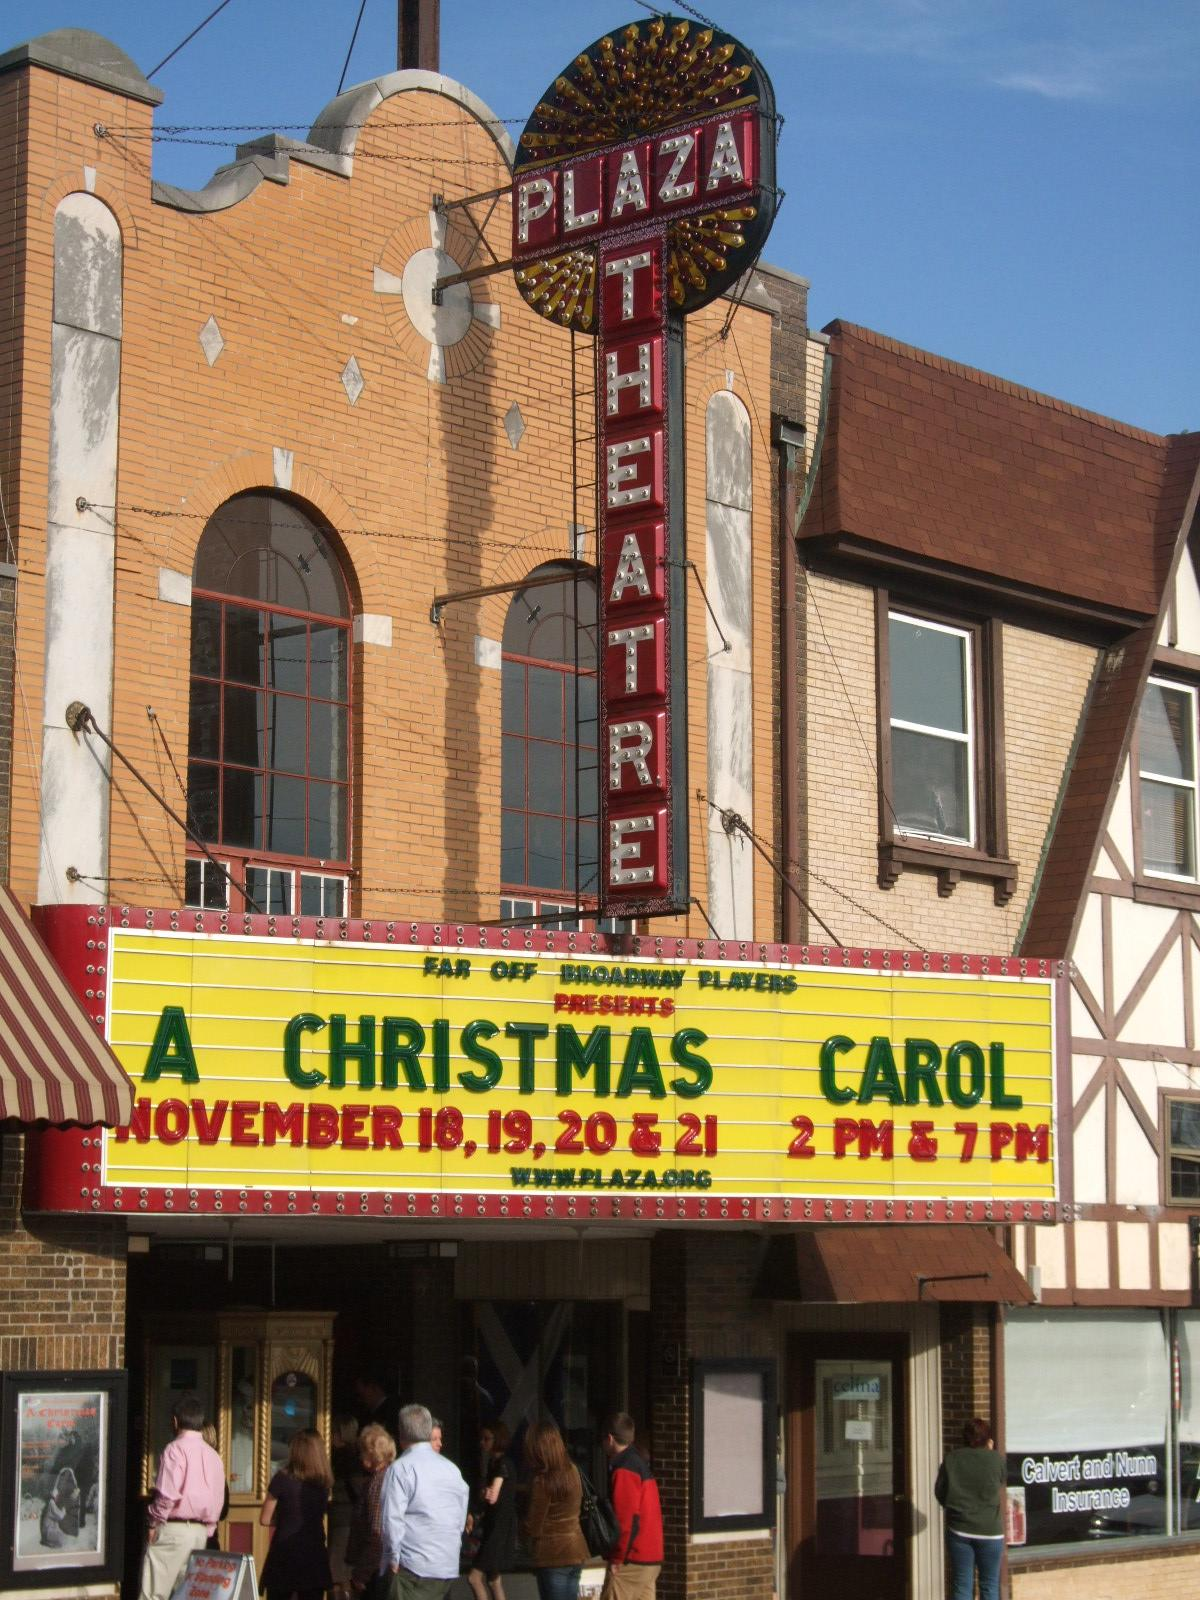 A Christmas Carol: Perfect for Kicking Off Our 2010 Holiday Season